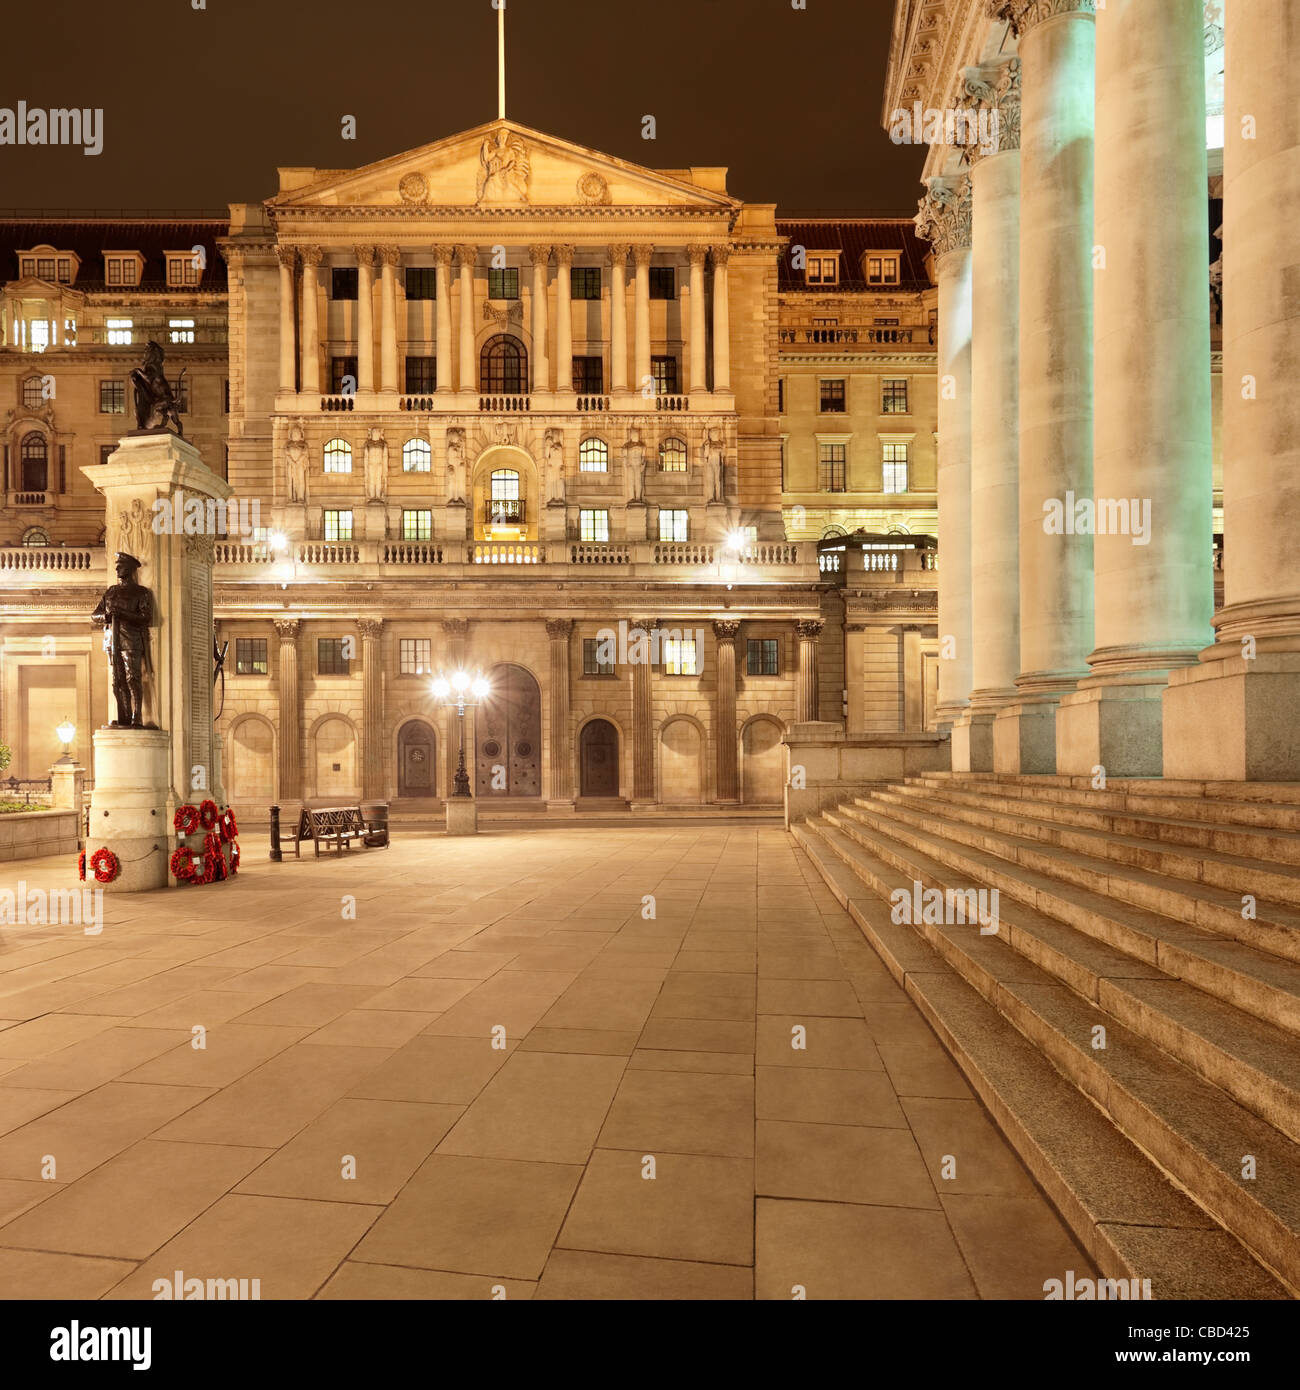 Bank of England lit up at night - Stock Image